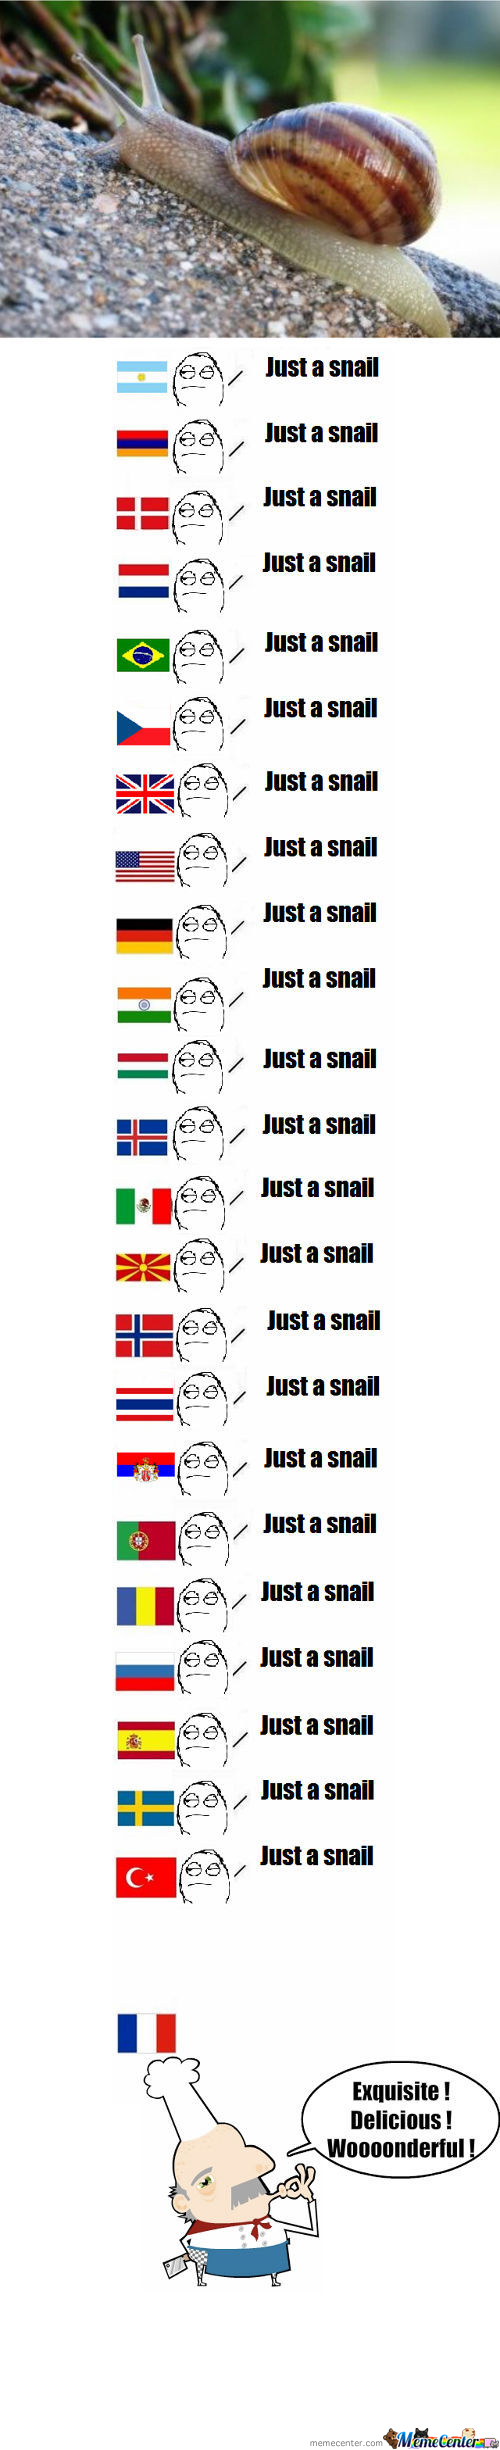 Difference Between Countries